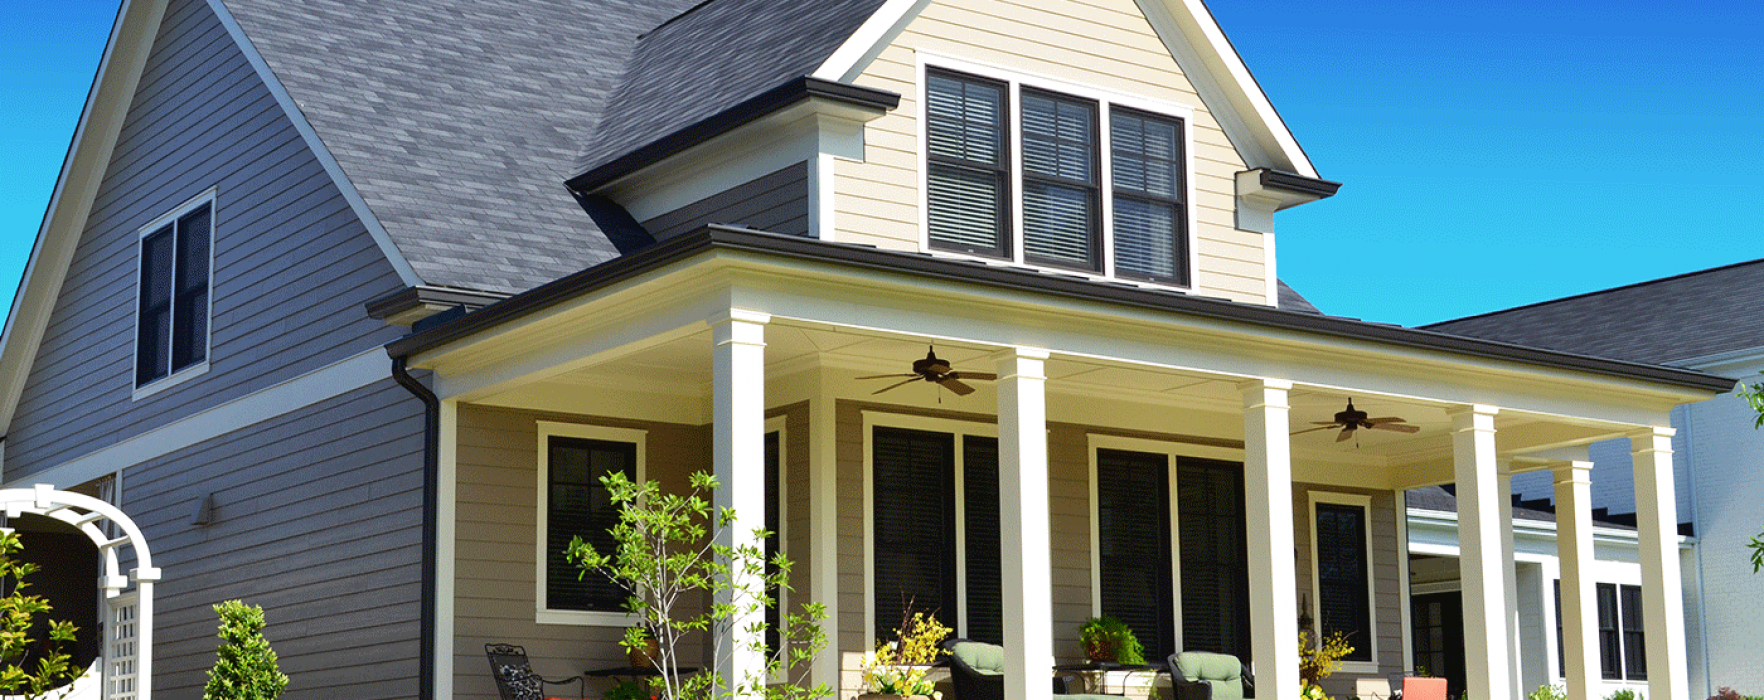 5 Etiquette Rules Every Seller Should Know Better Homes